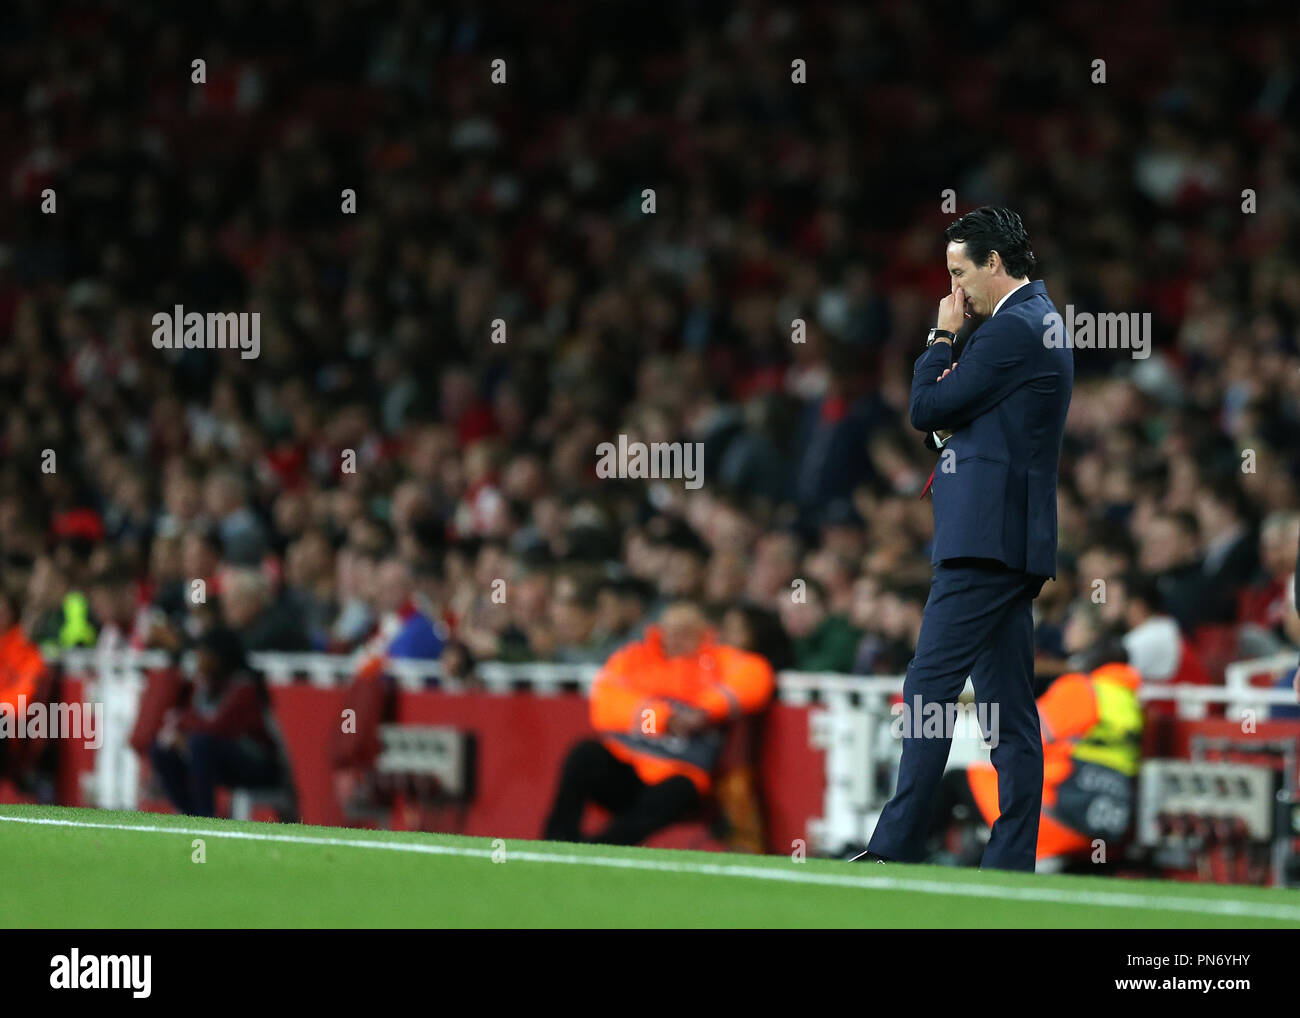 Emirates Stadium, London, UK. 20th Sep, 2018. UEFA Europa League football, Arsenal versus Vorskla Poltava; Arsenal manager Unai Emery looking down onto the pitch in thought Credit: Action Plus Sports Images/Alamy Live News - Stock Image